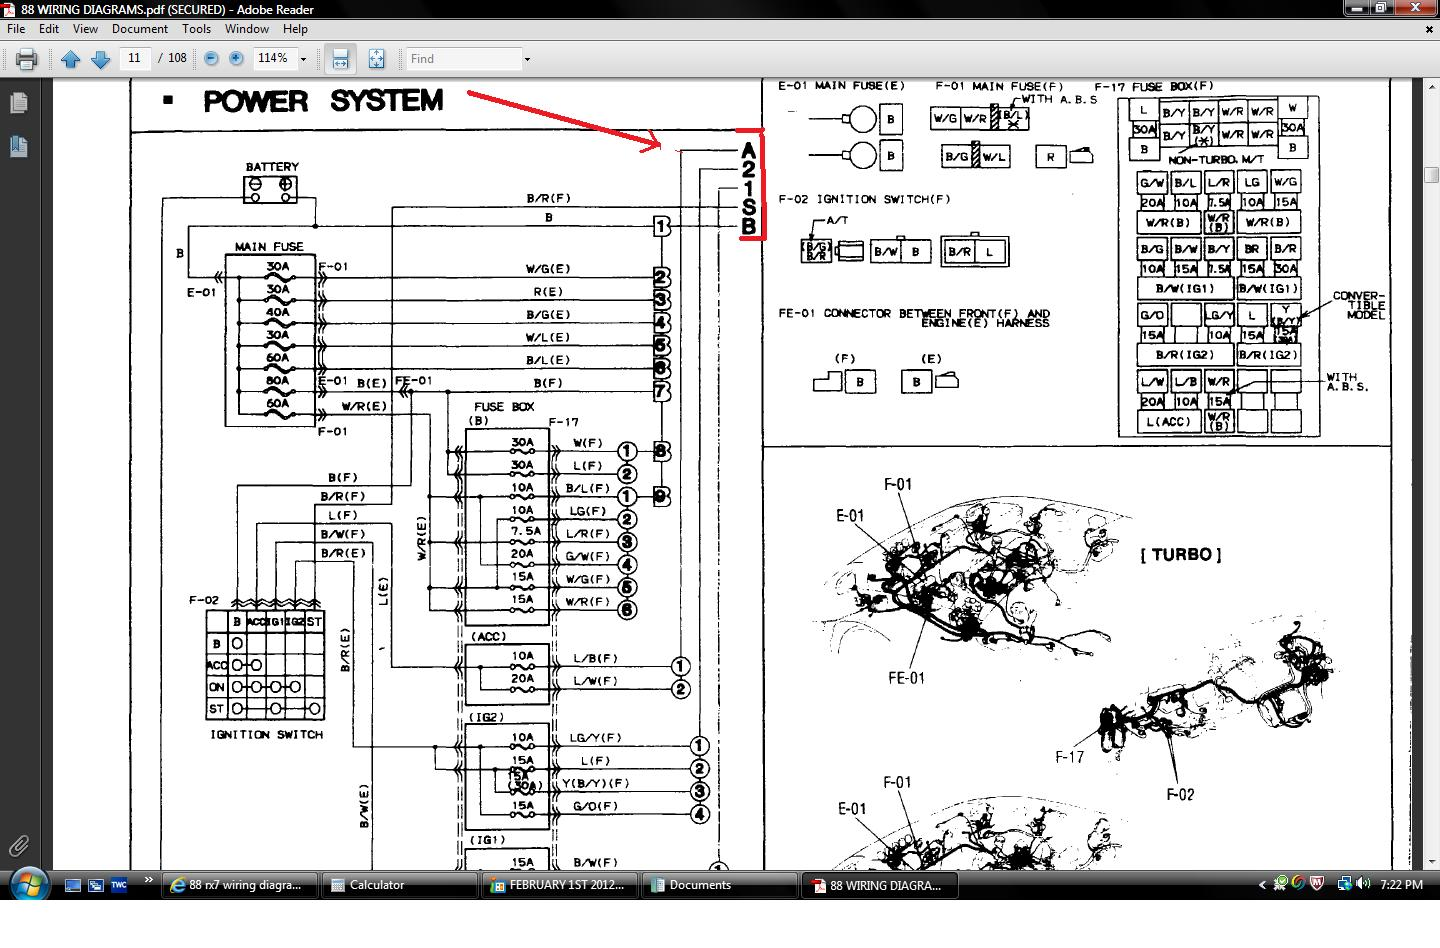 hight resolution of 1985 mazda rx 7 fuse diagram wiring diagram forward mazda rx 7 ignition switch diagram likewise